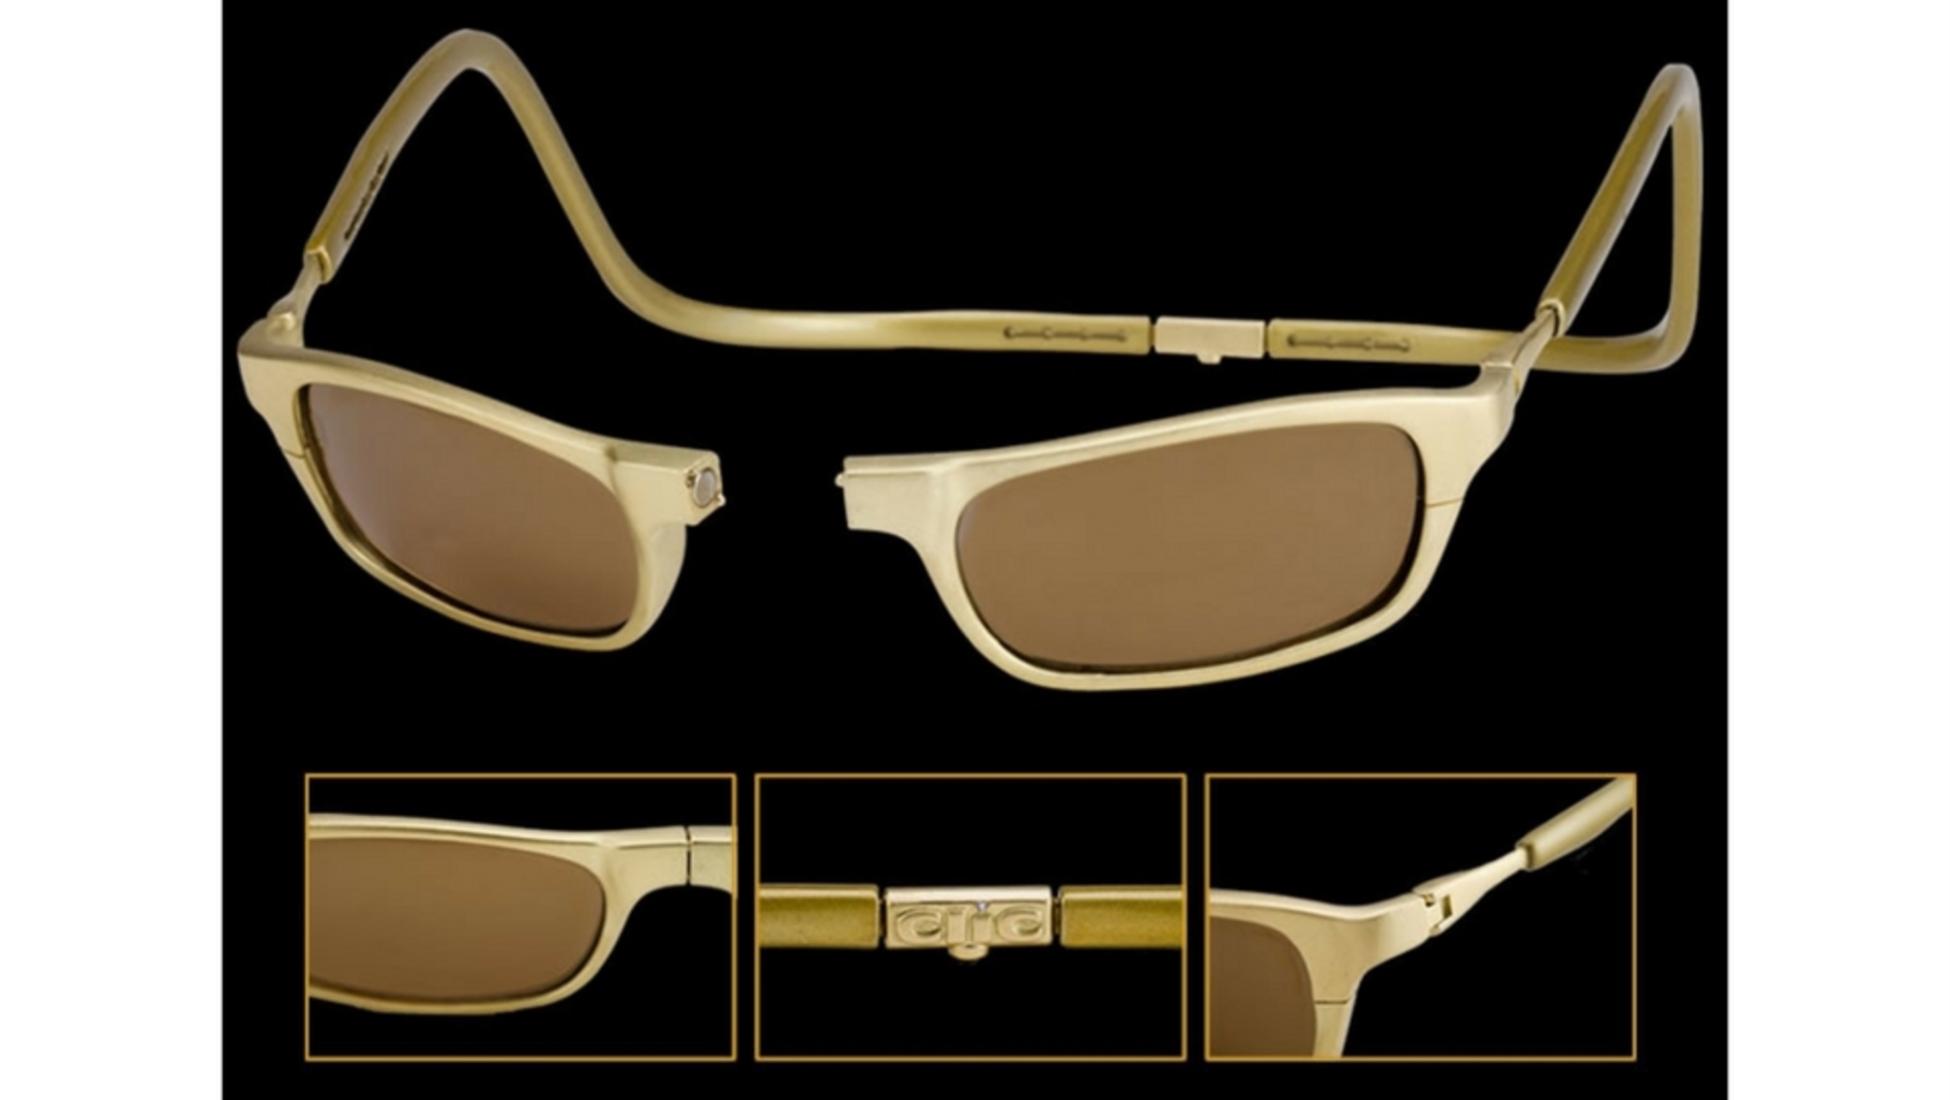 c59923ba836a This time the job was to create the most expensive sports sunglasses ever  made. Their masterpiece is handmade and each of the 100 produced required  almost ...